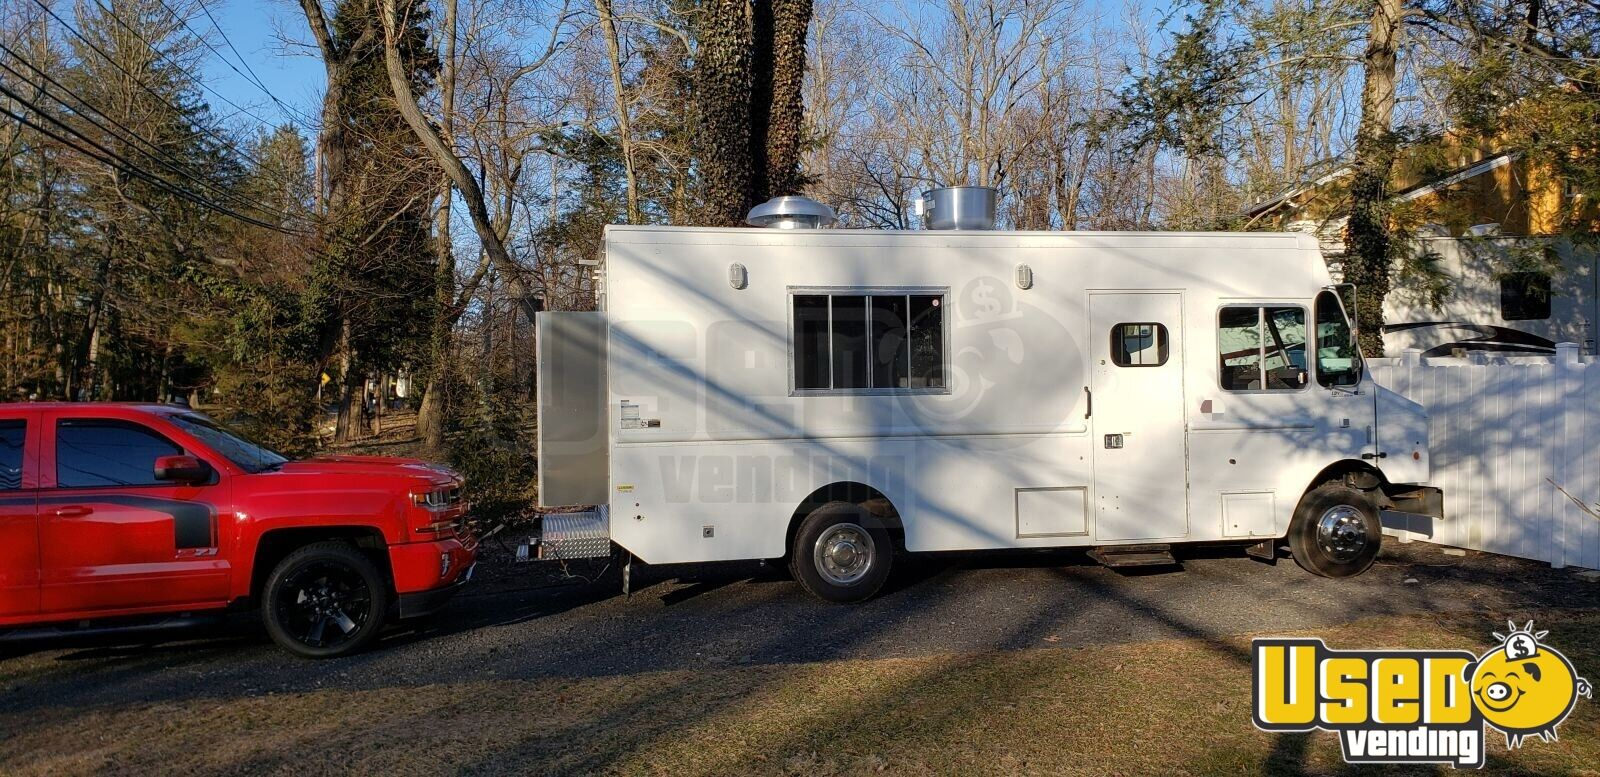 2011 Workhorse All-purpose Food Truck Concession Window New Jersey Diesel Engine for Sale - 3